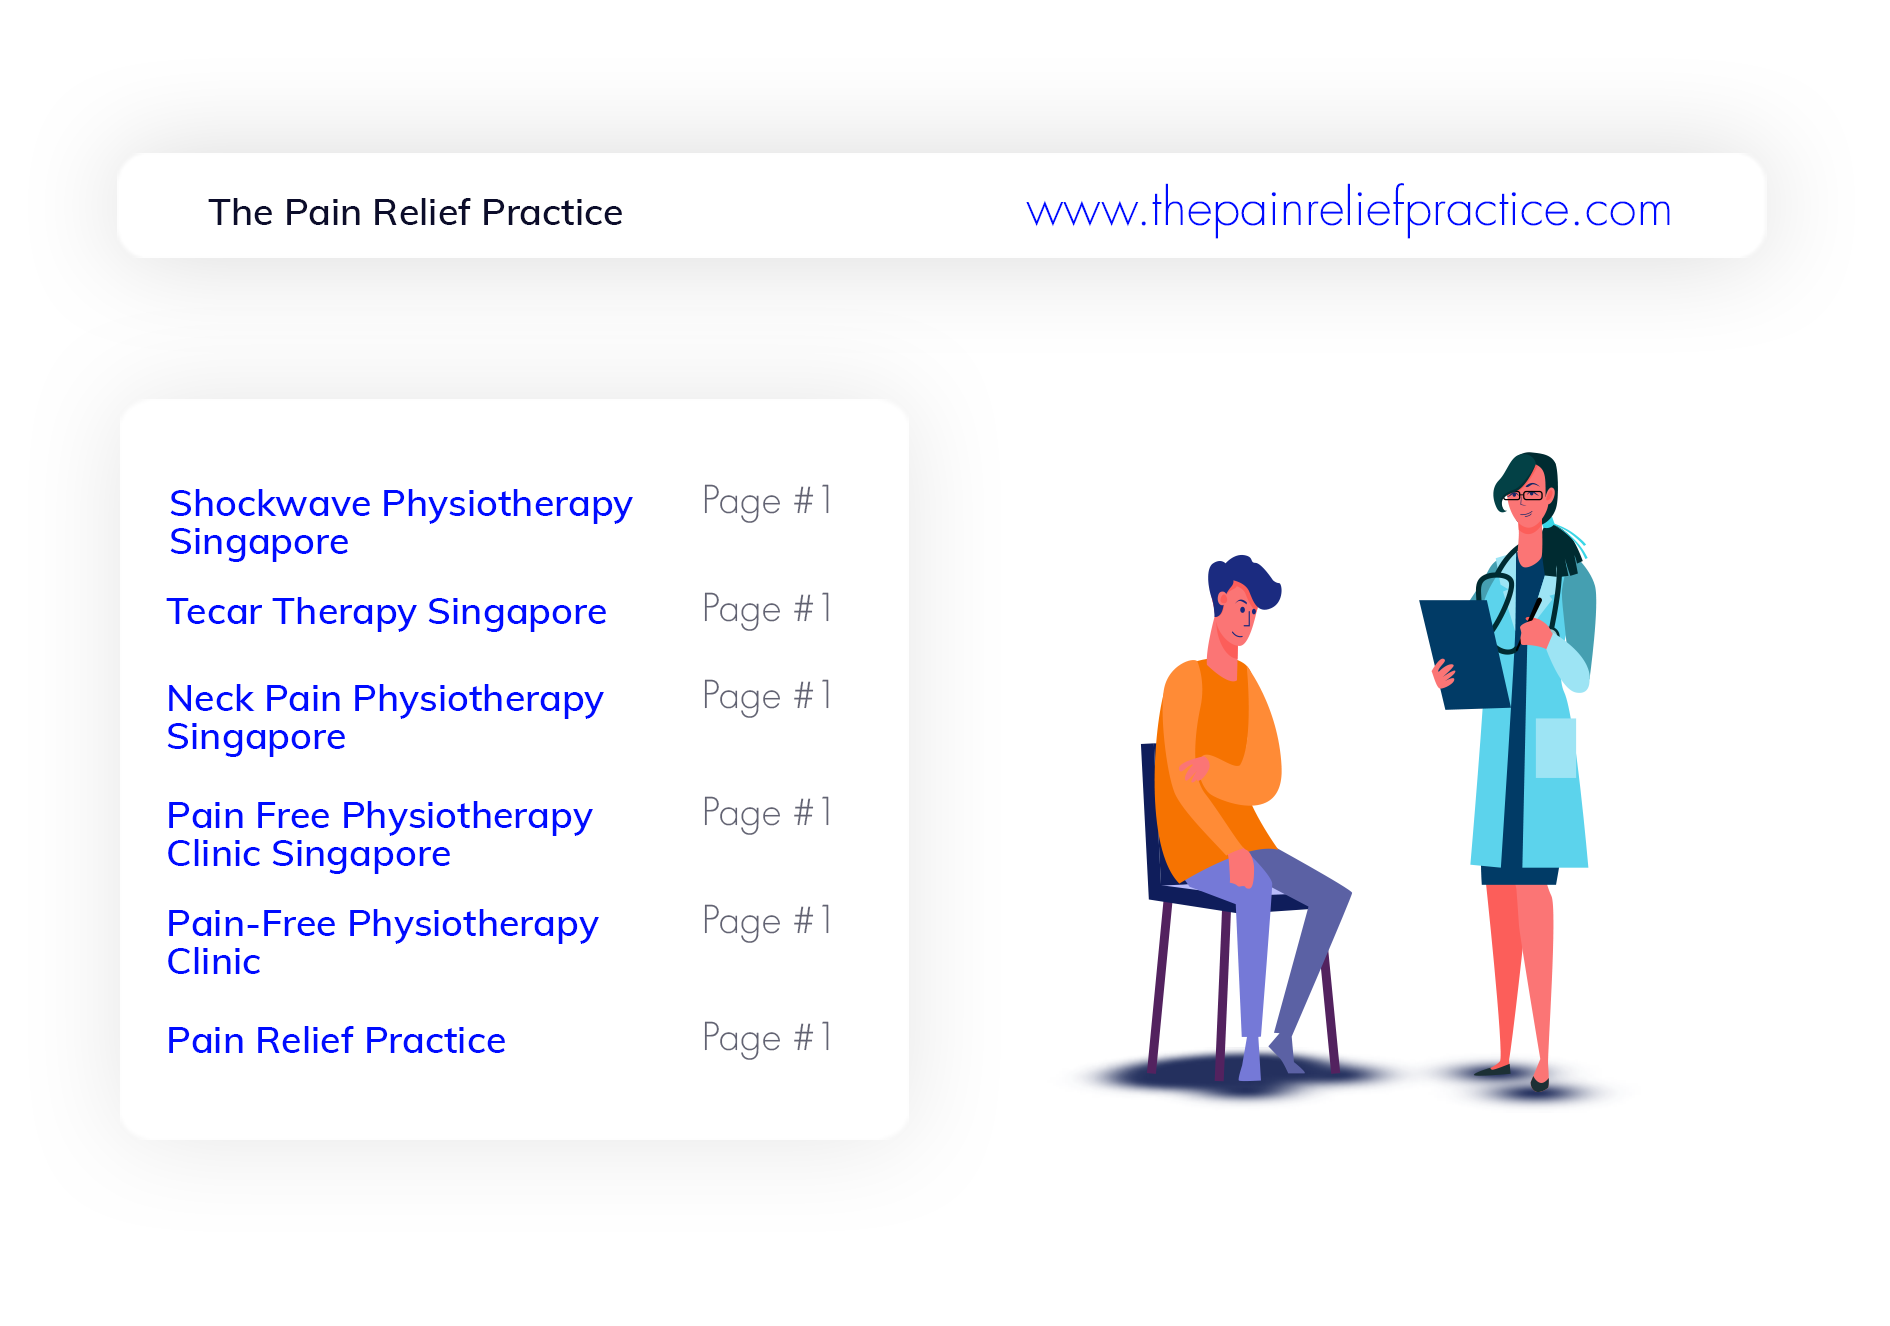 https://s3-ap-southeast-1.amazonaws.com/singsys-grace/production/images/services/digital/seo-service-right-banner/thepainreliefpractice-ranking-banner.png